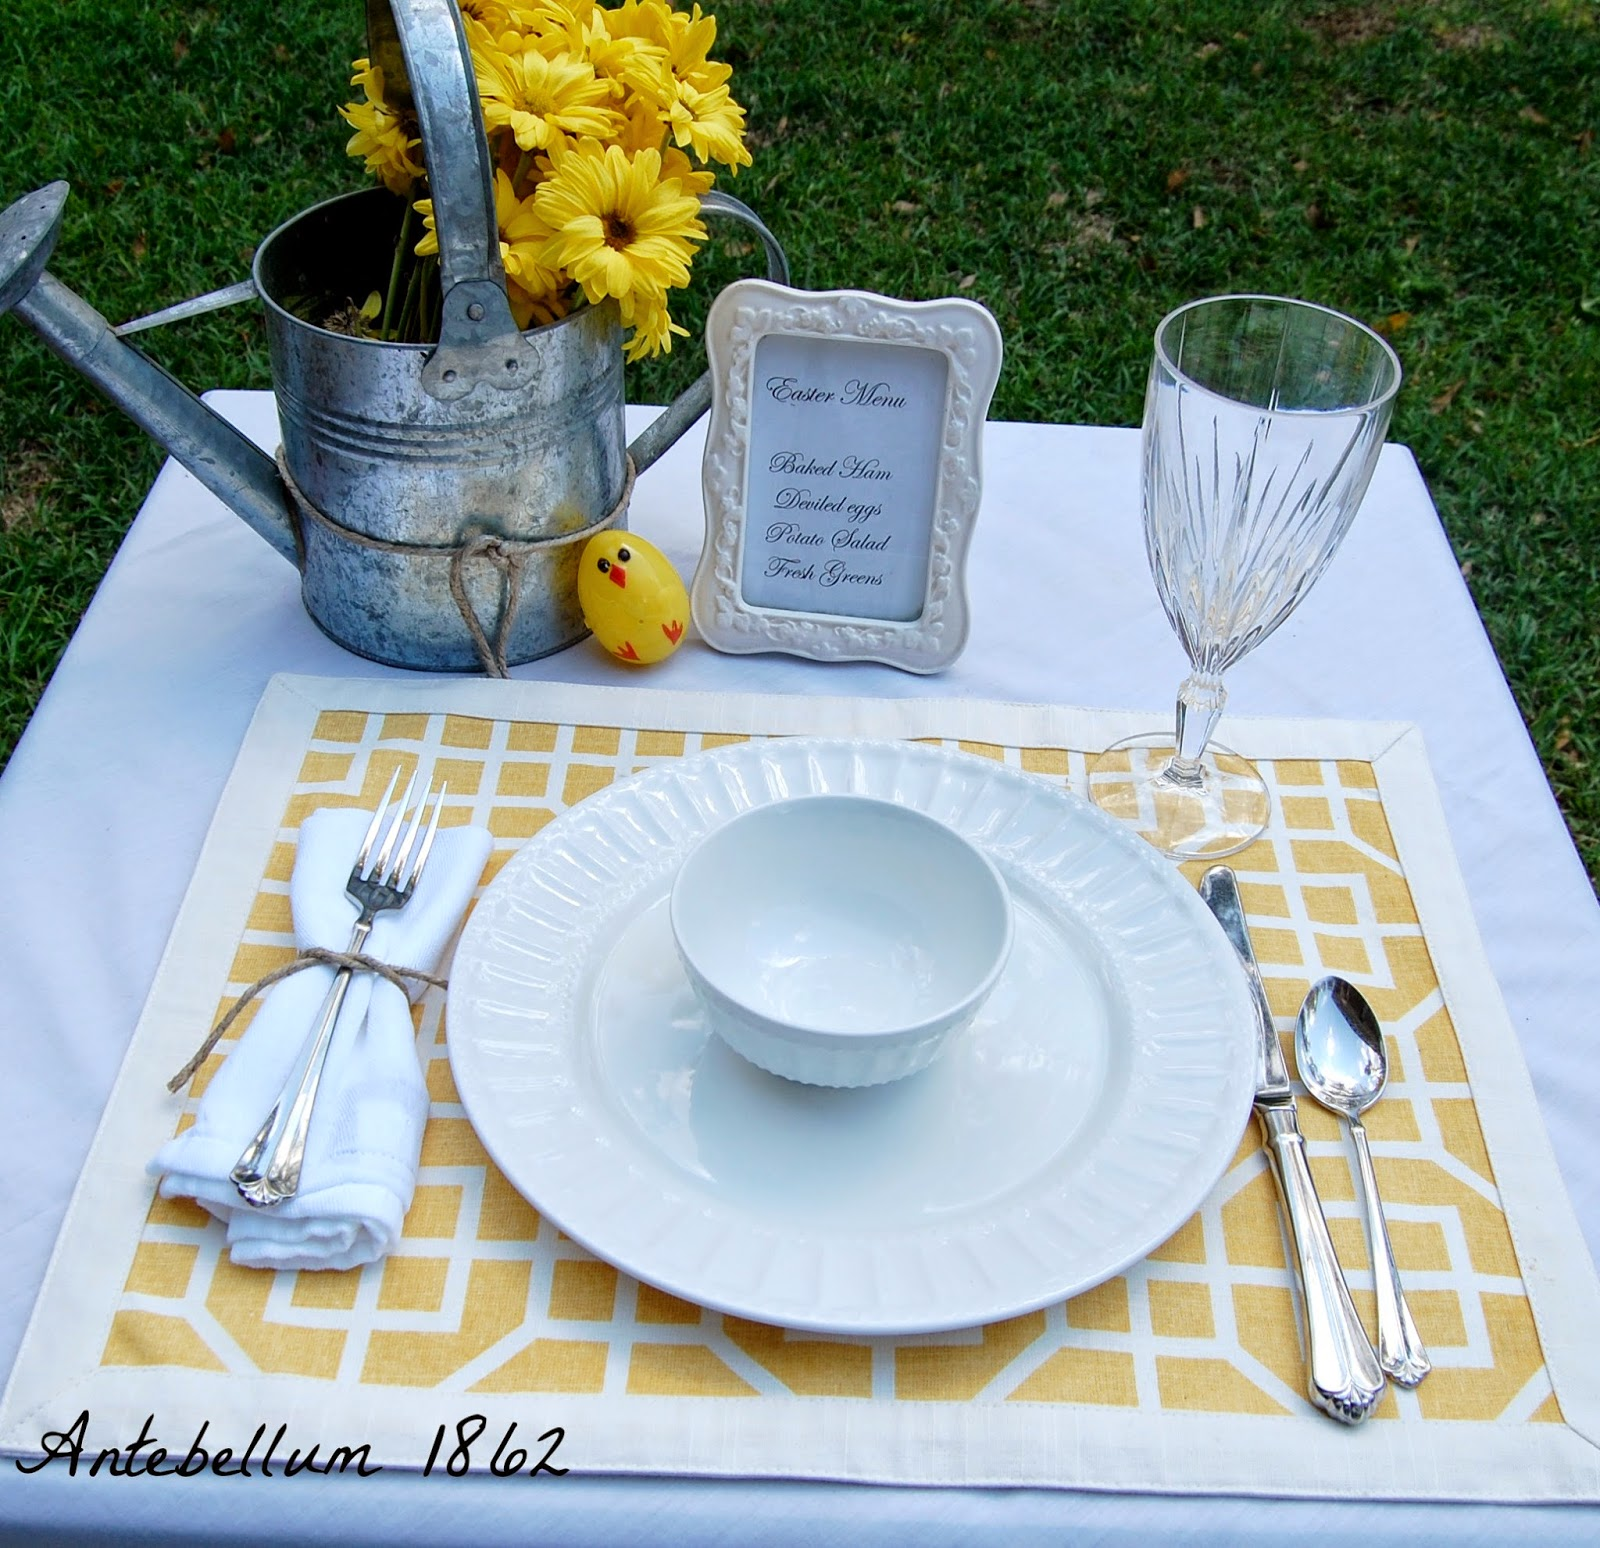 You can make your table setting less formal by having a little fun. Flowers in a watering can and plastic peep eggs make this fun especially for the kids. & Antebellum 1862: How to Create Simple Table Settings for Easter